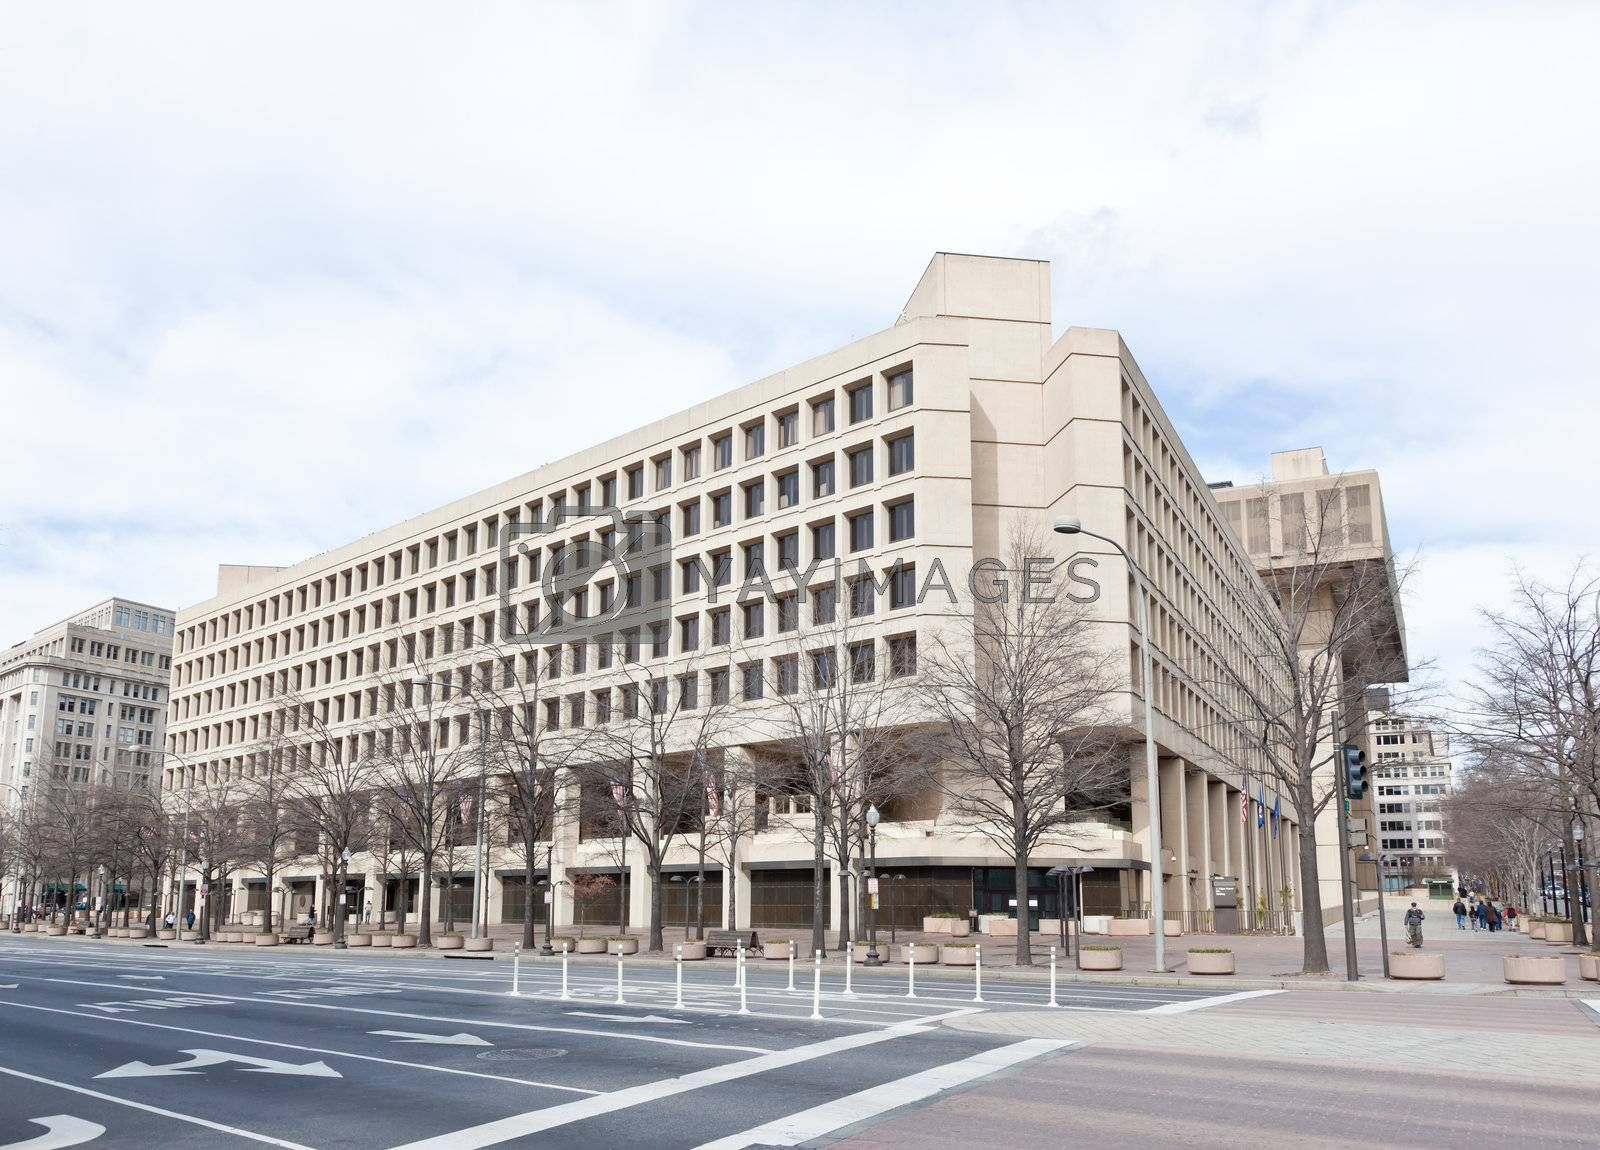 FBI building in Washington DC USA. This building was erected in 1908